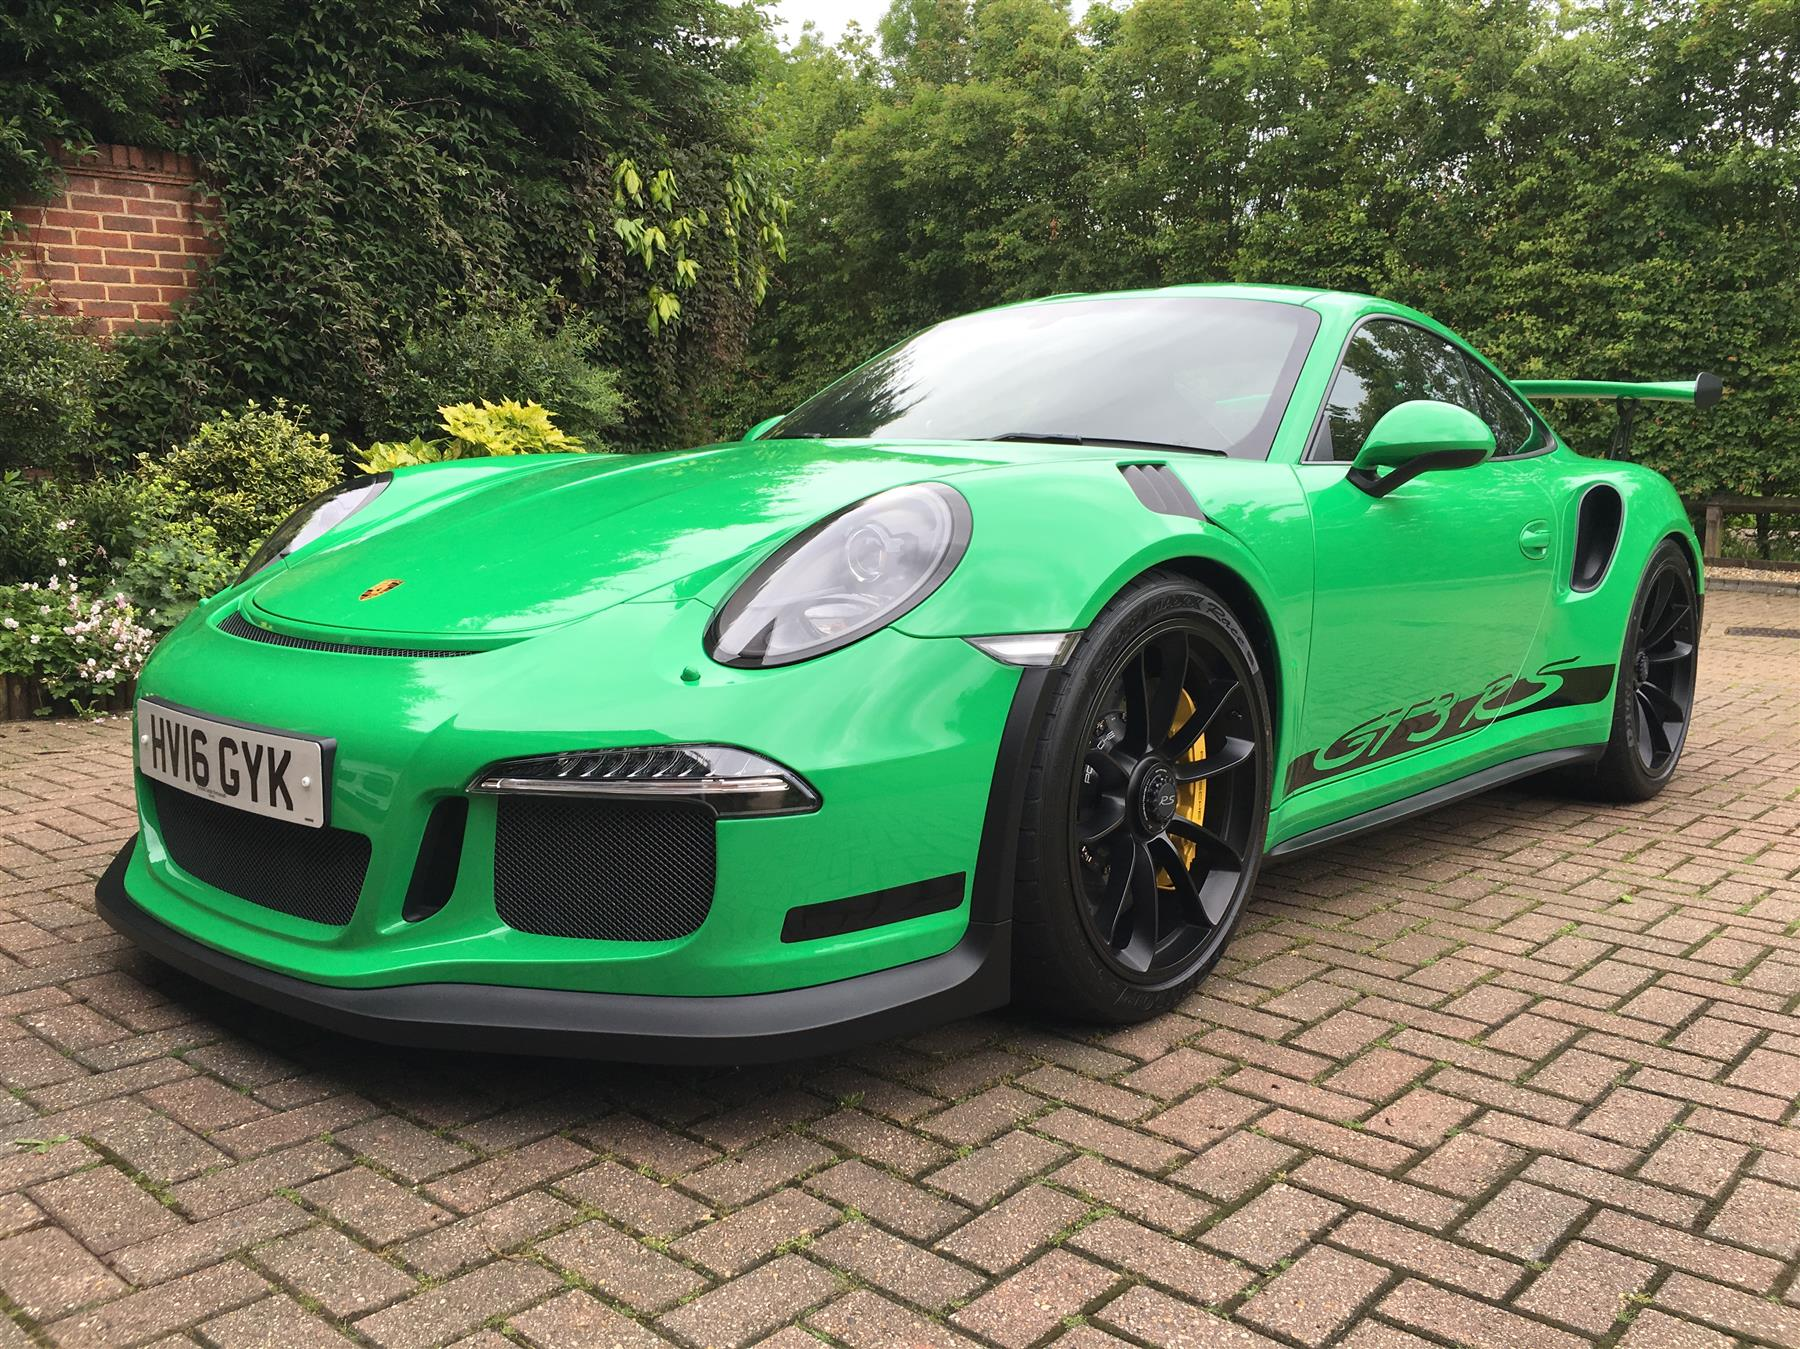 2016 rs green porsche 911 gt3 rs for sale at 321 000 in the uk gtspirit. Black Bedroom Furniture Sets. Home Design Ideas